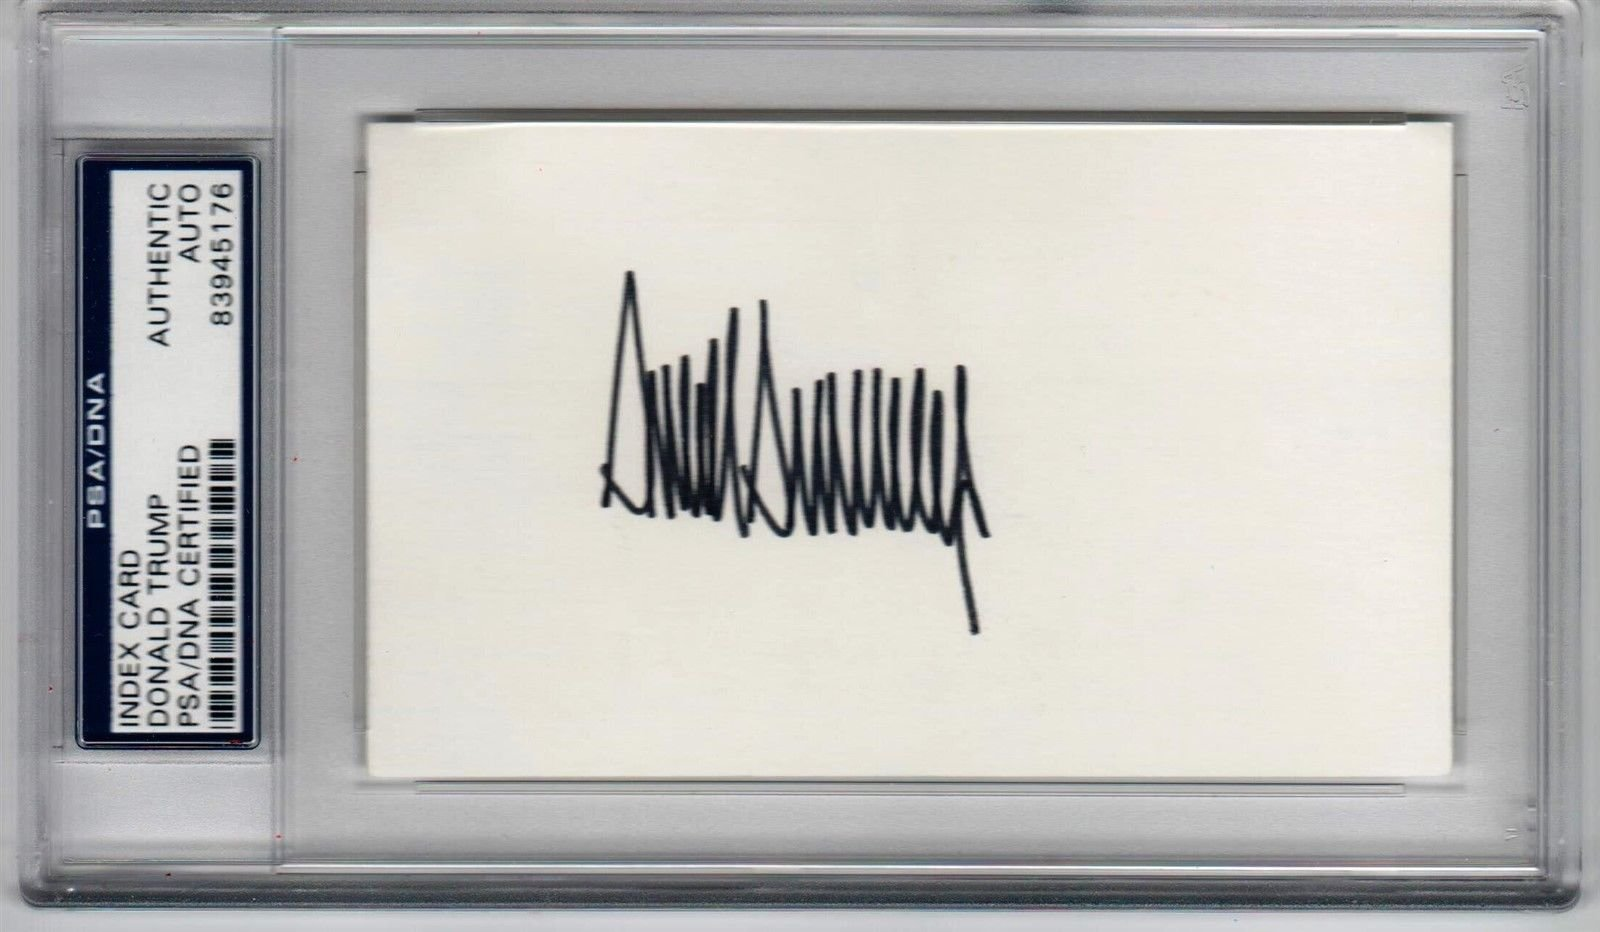 President Donald Trump signed 3x5 index card PSA/DNA early signature